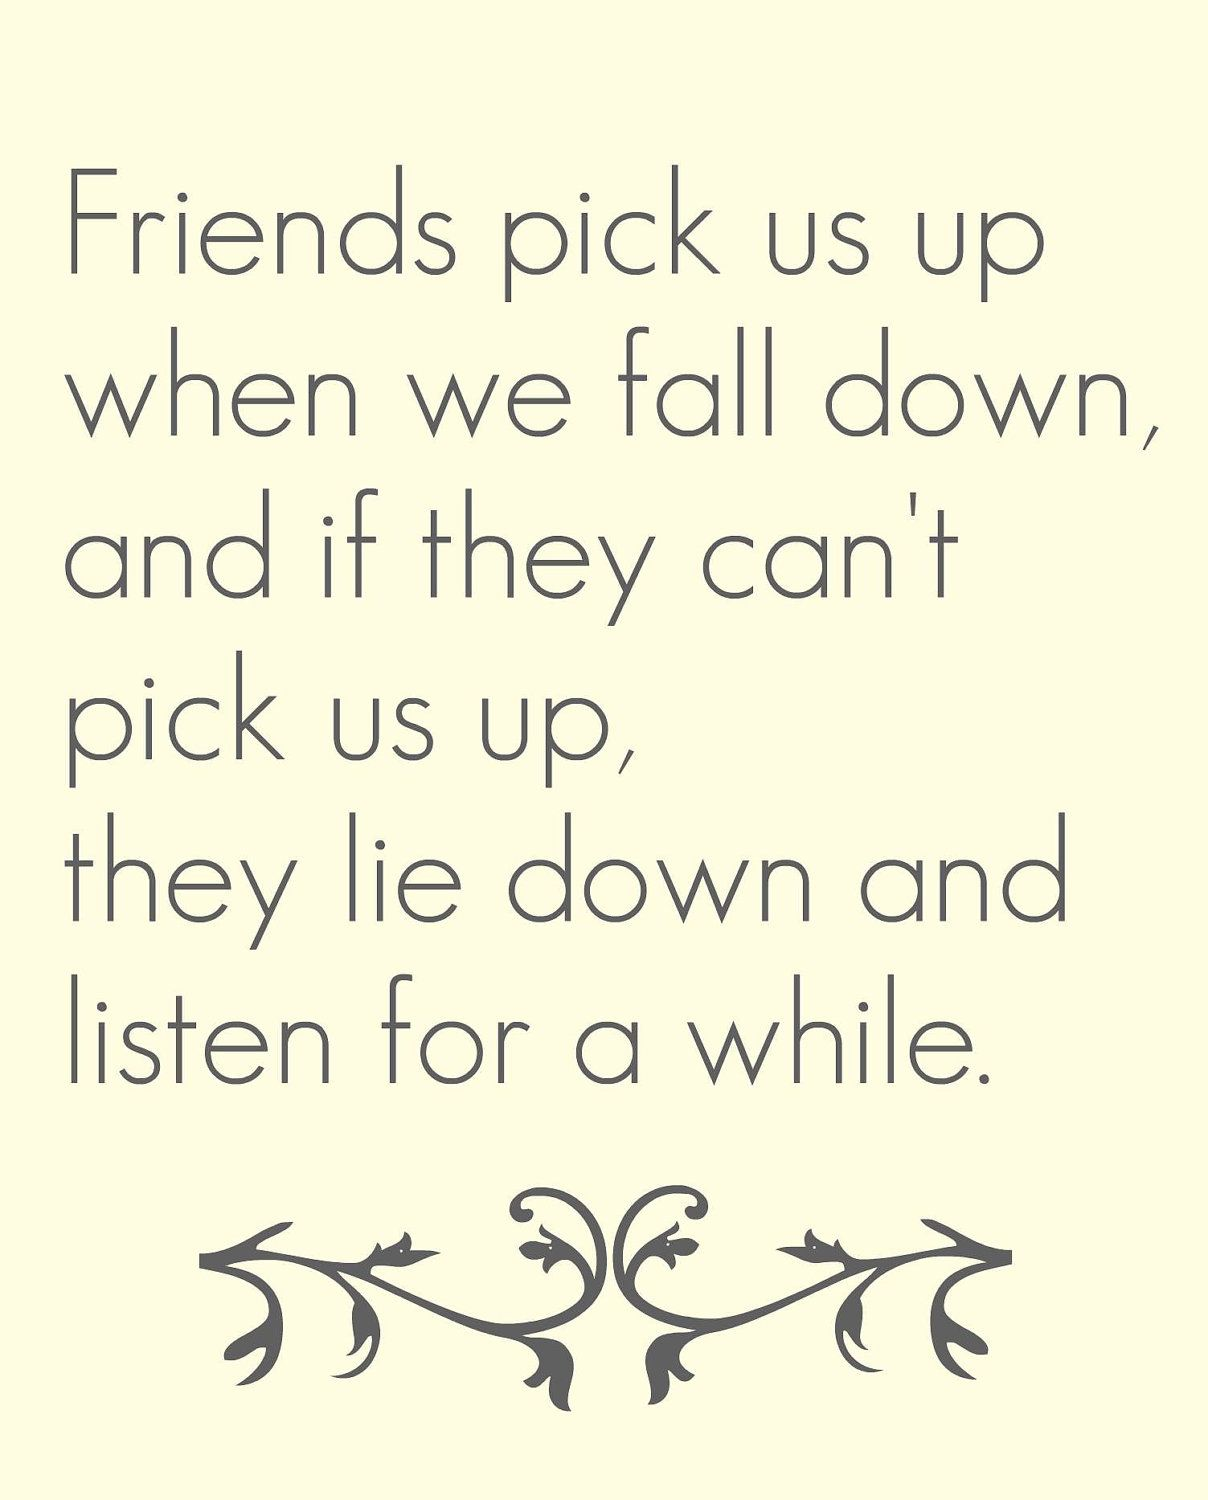 friends pick us up when we fall down, and if they can't pick us up